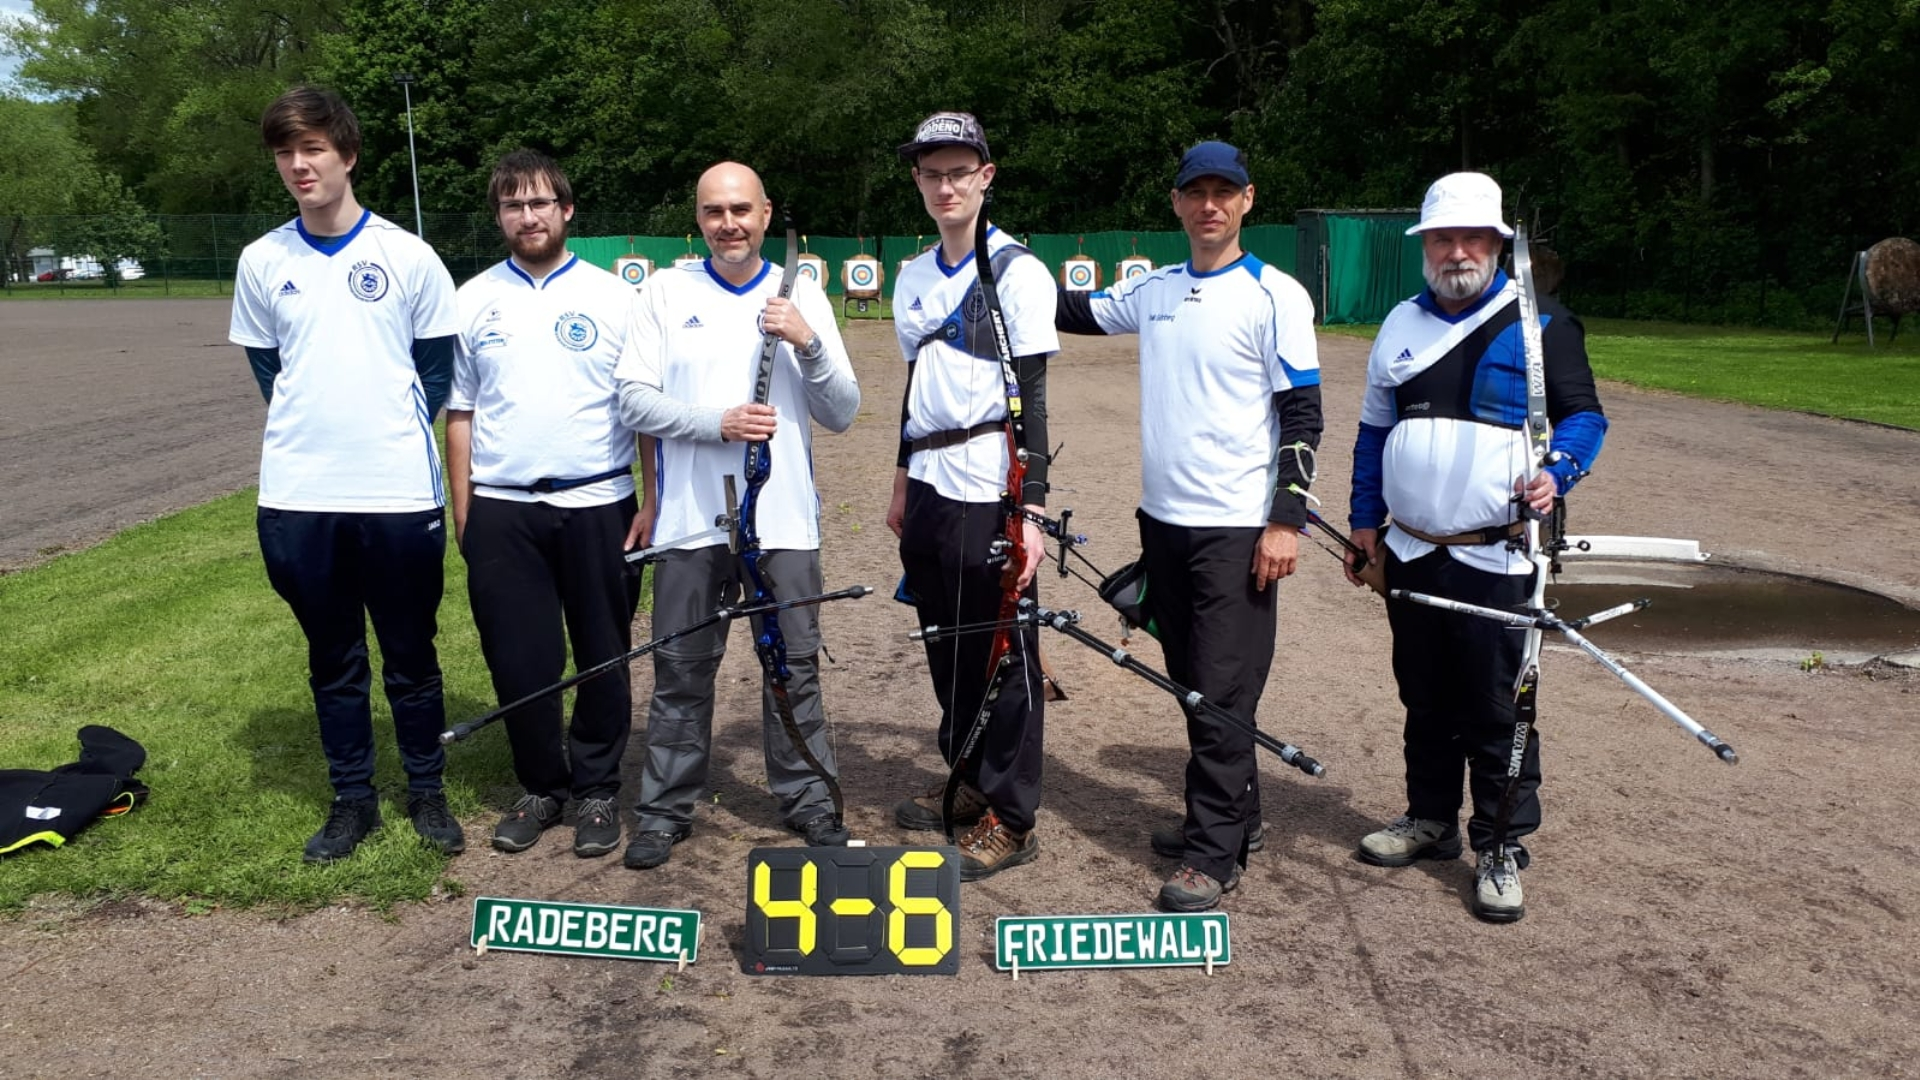 Landesliga in Dresden am 02. Juni 2019